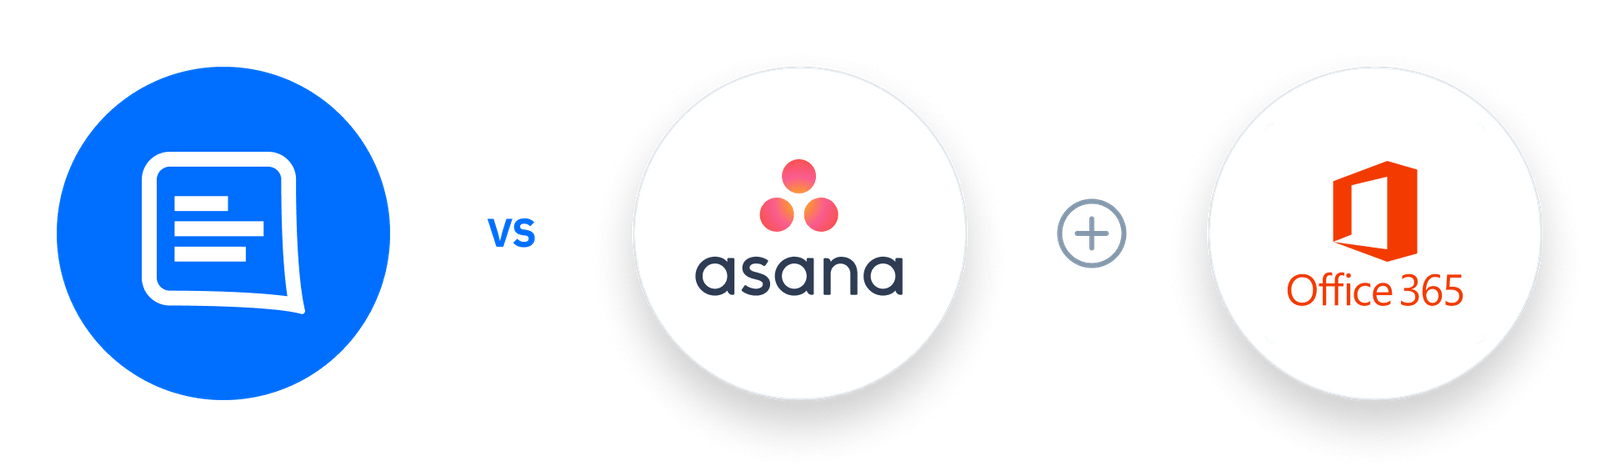 GC Vs Asana + Office 365